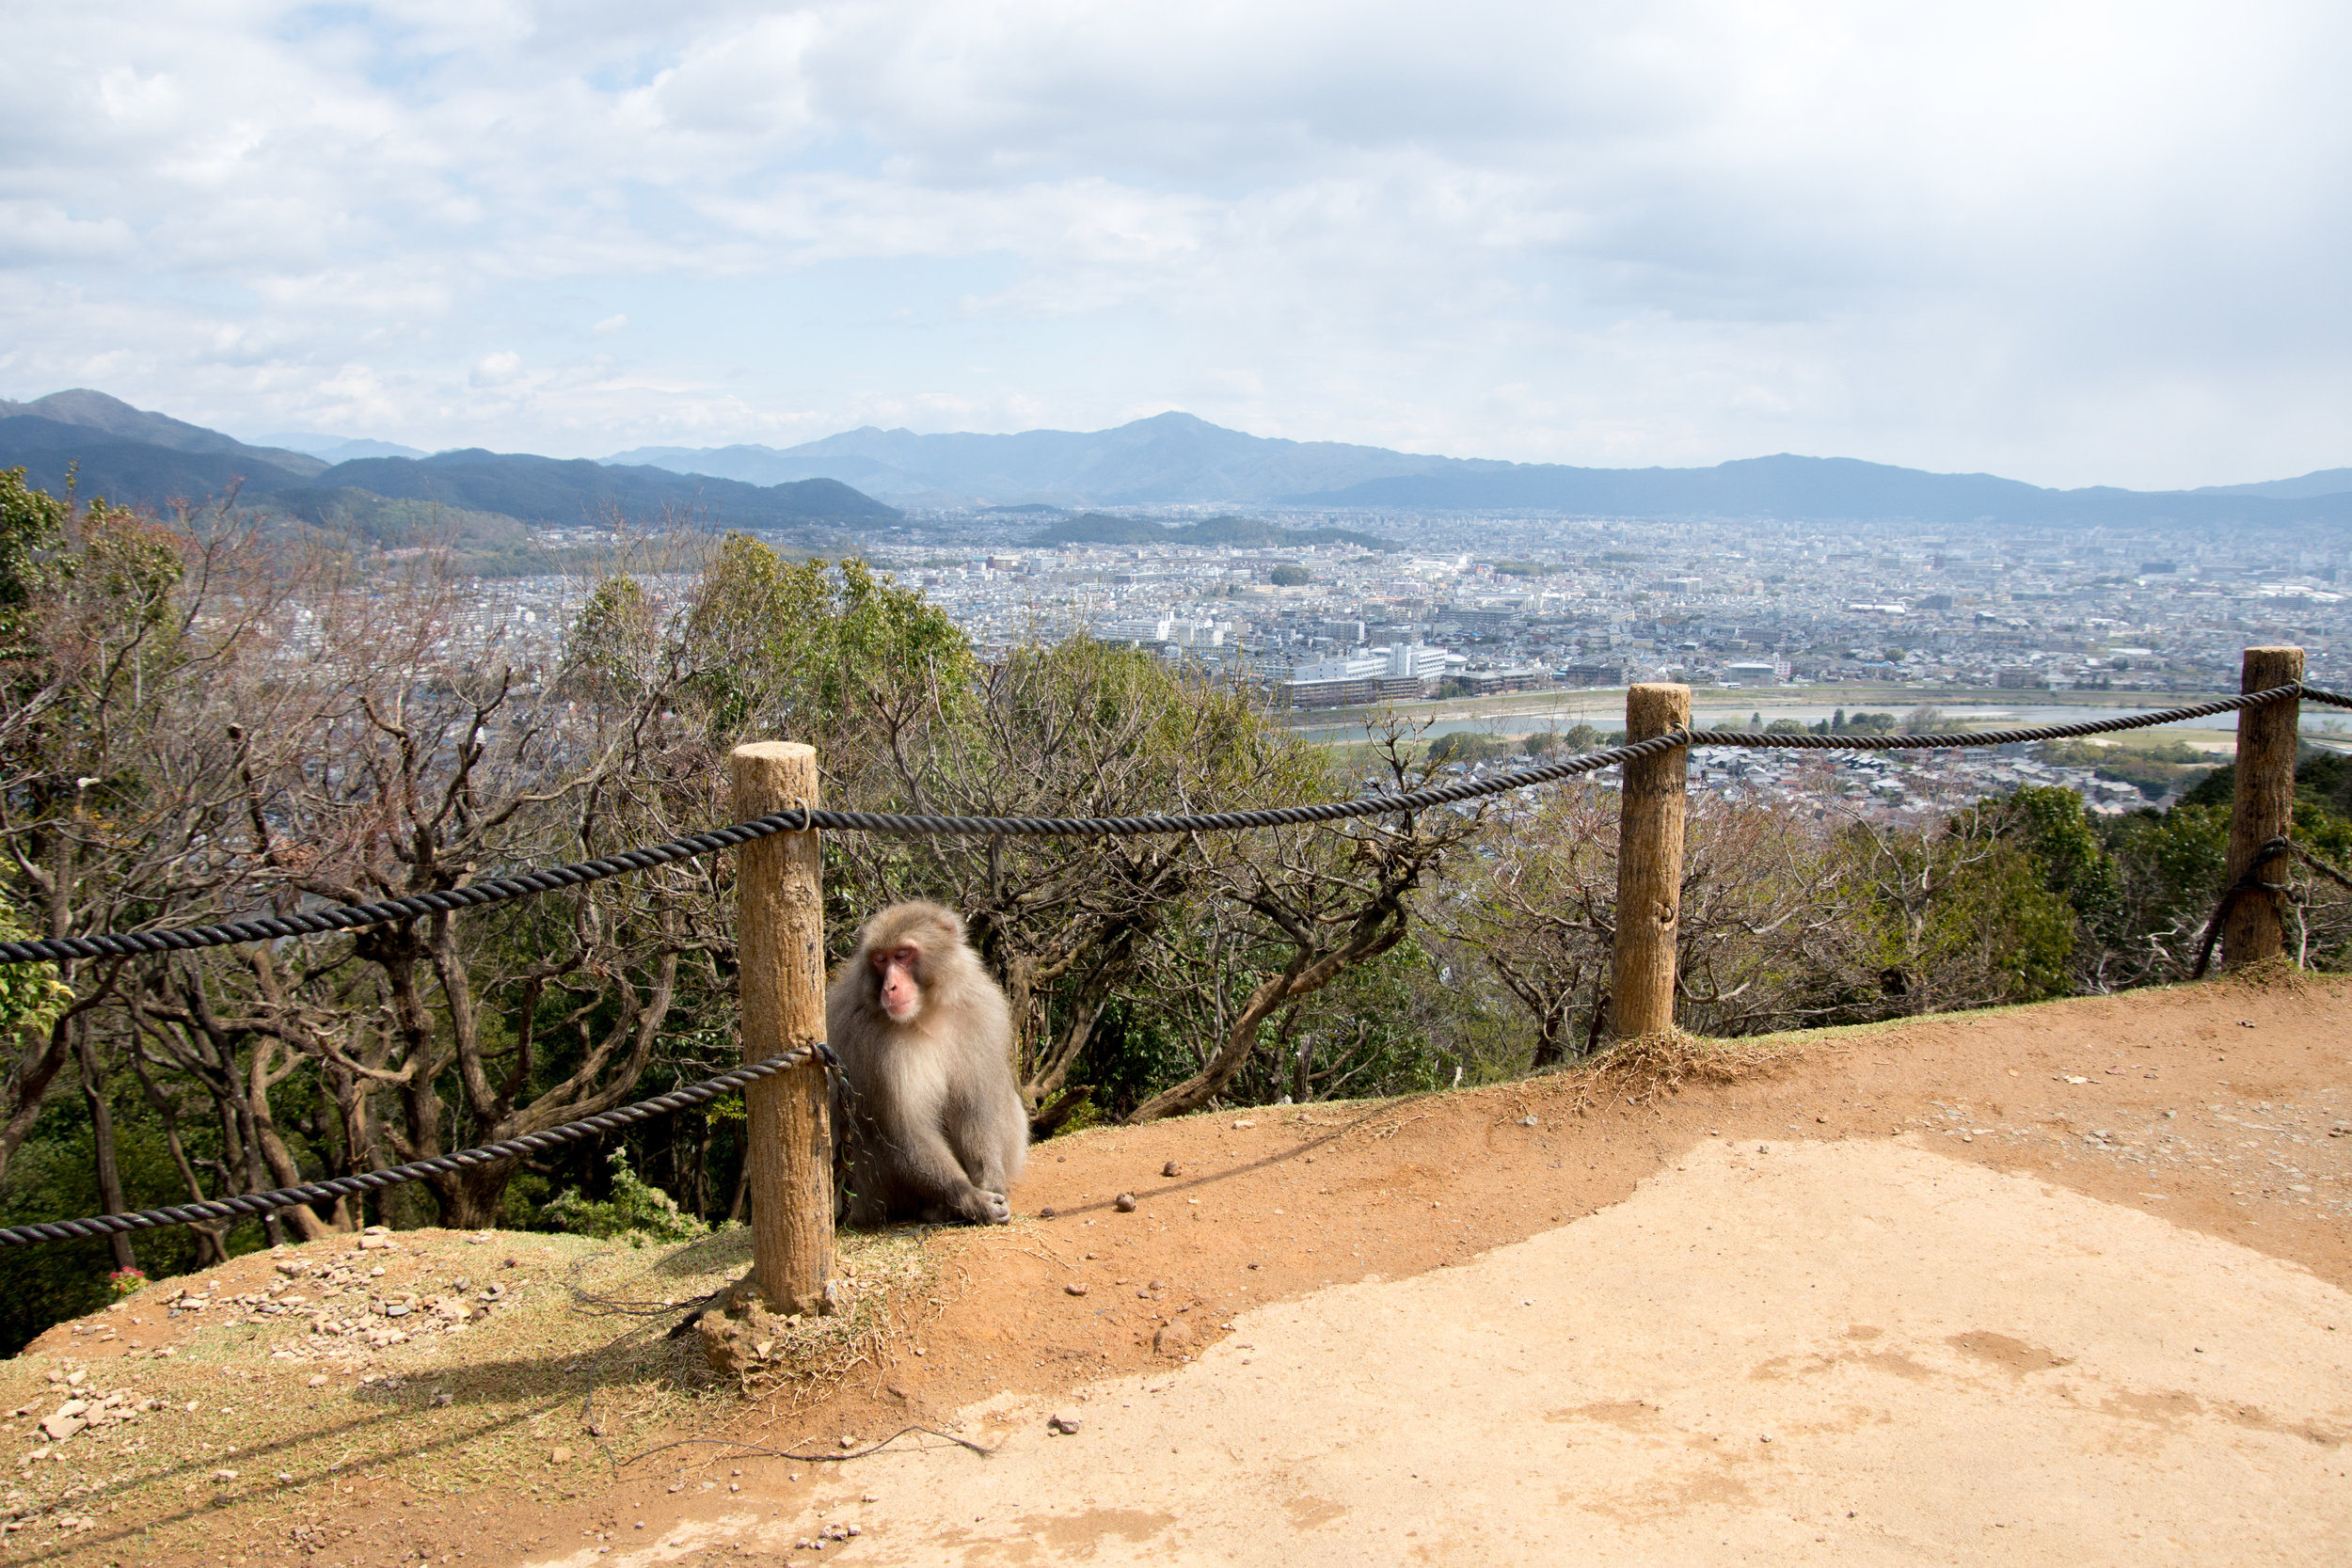 Monkey Park Iwatayama in Arashiyama – Kyoto, Japan